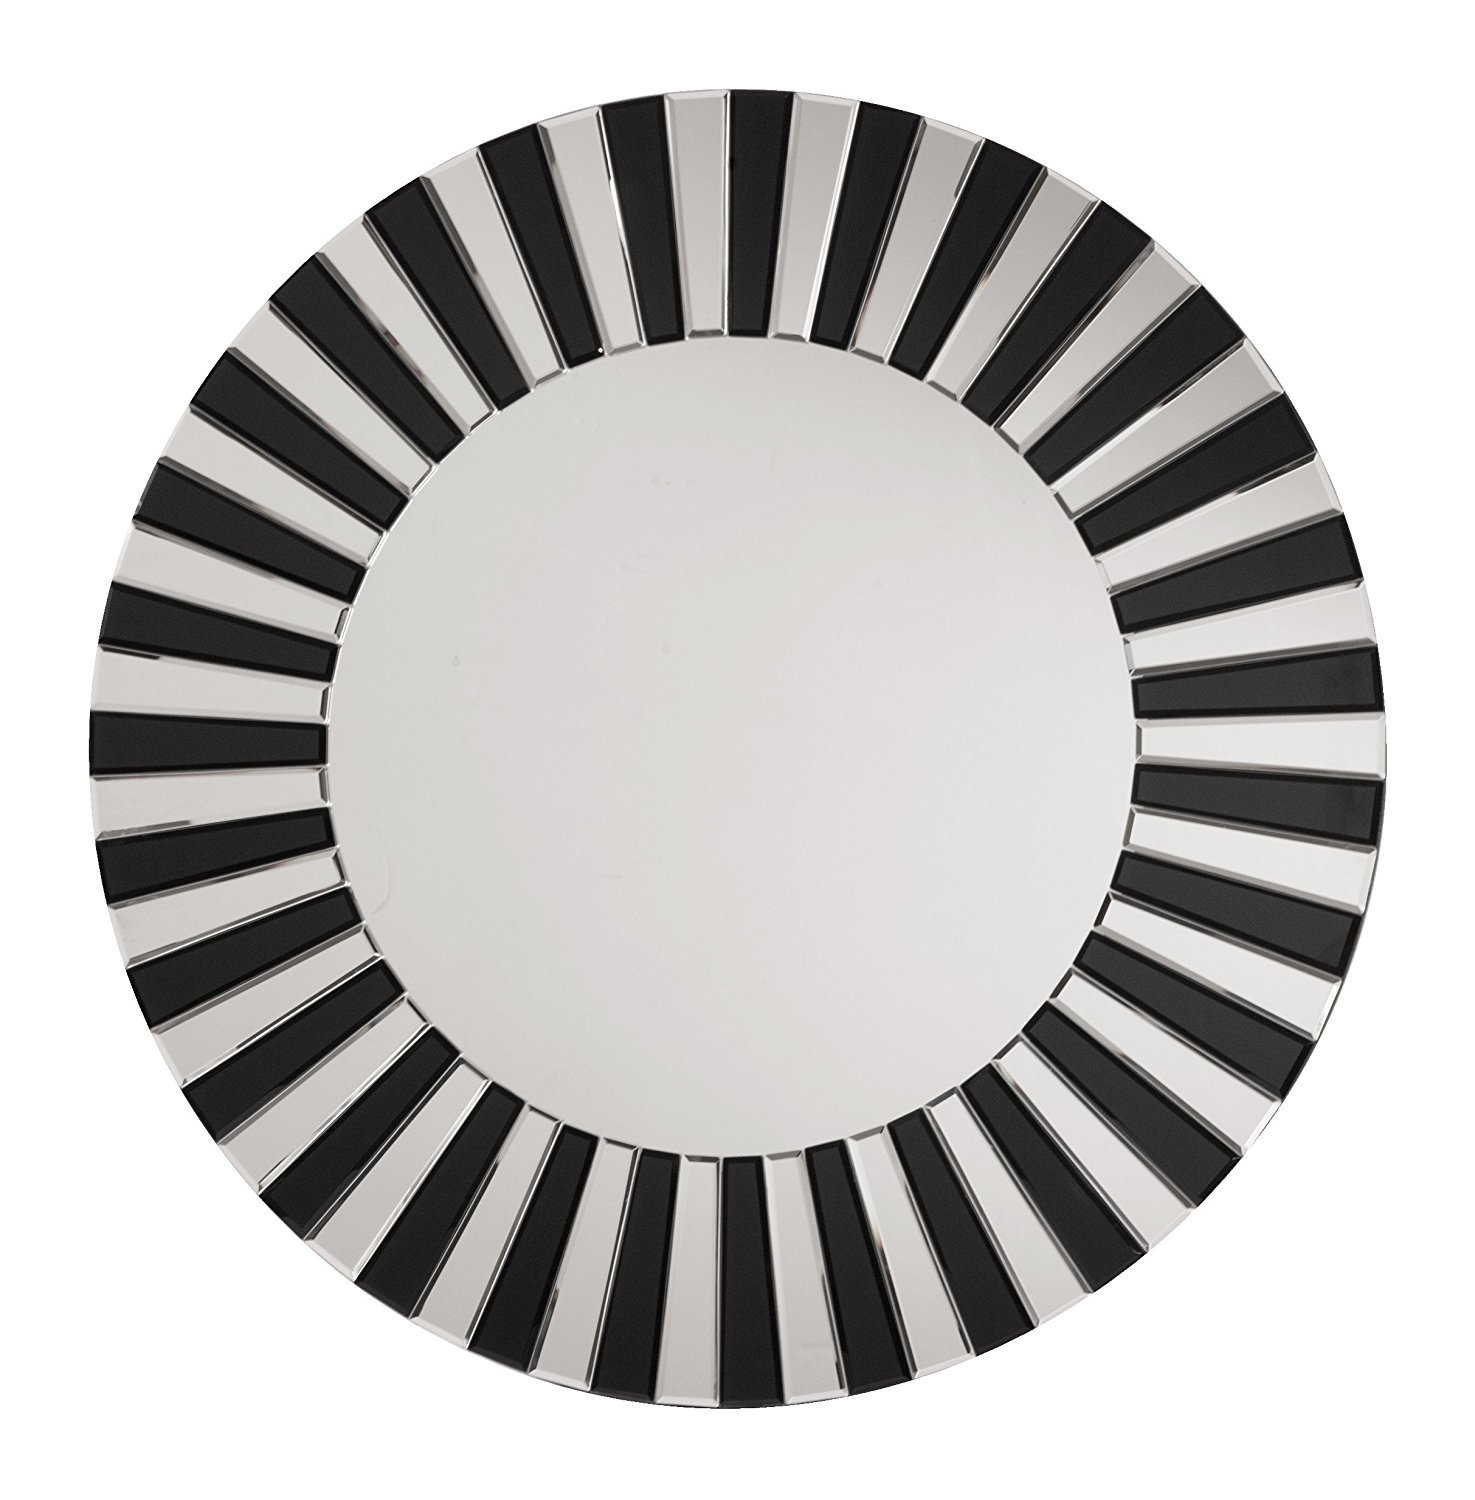 OSP Designs The Jazz Note Round Wall Decor with Glass, Mirror/Black